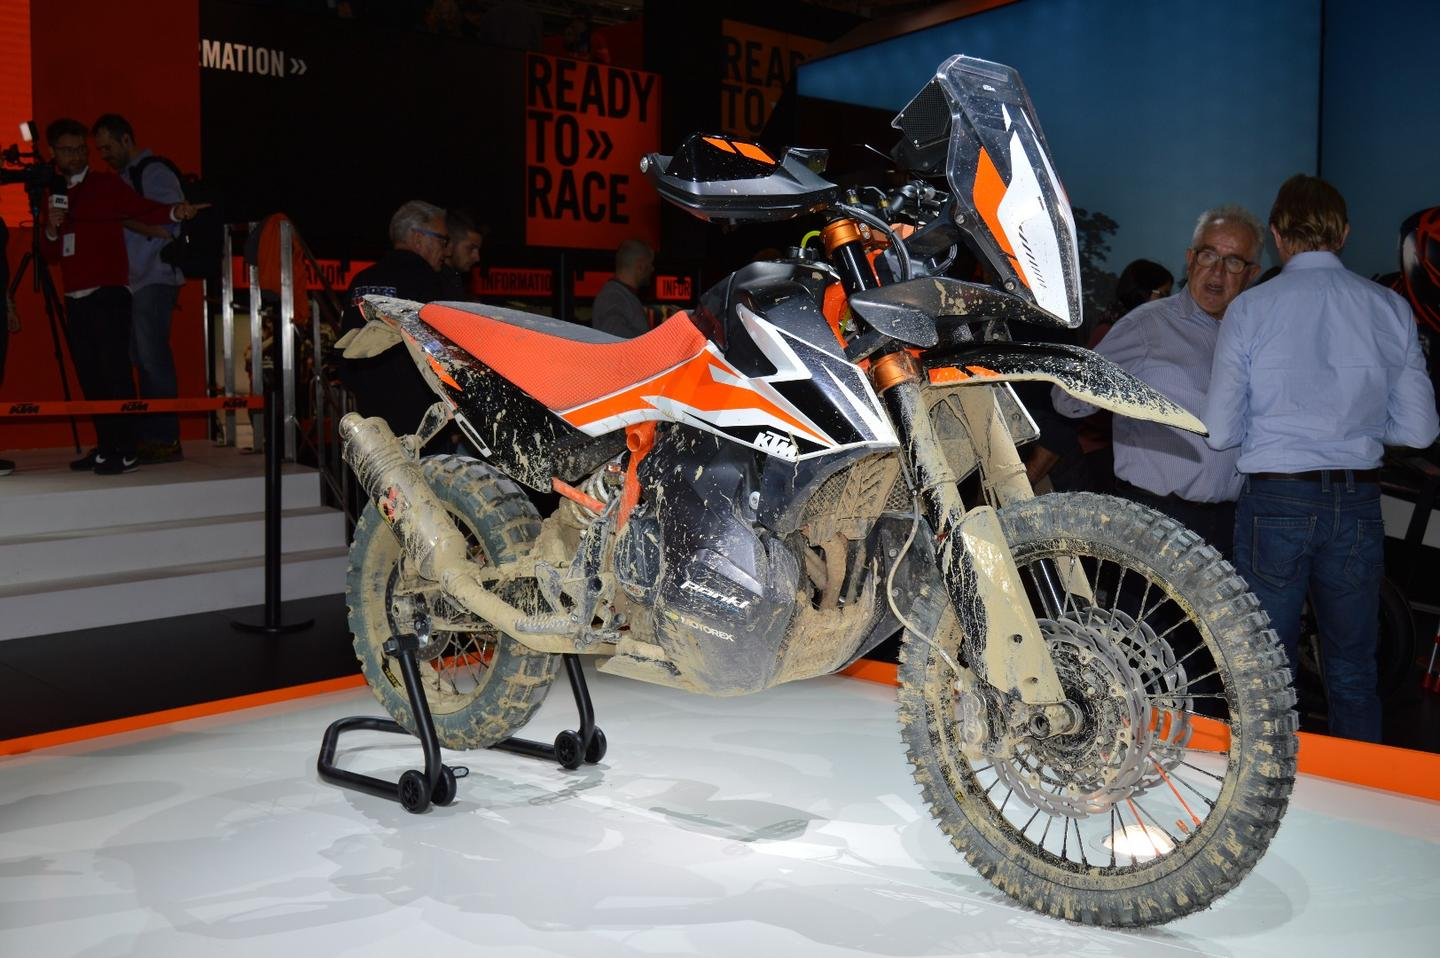 The 790 Adventure concept showcases the next bike to run on KTM's new in-line twin-cylinderengine